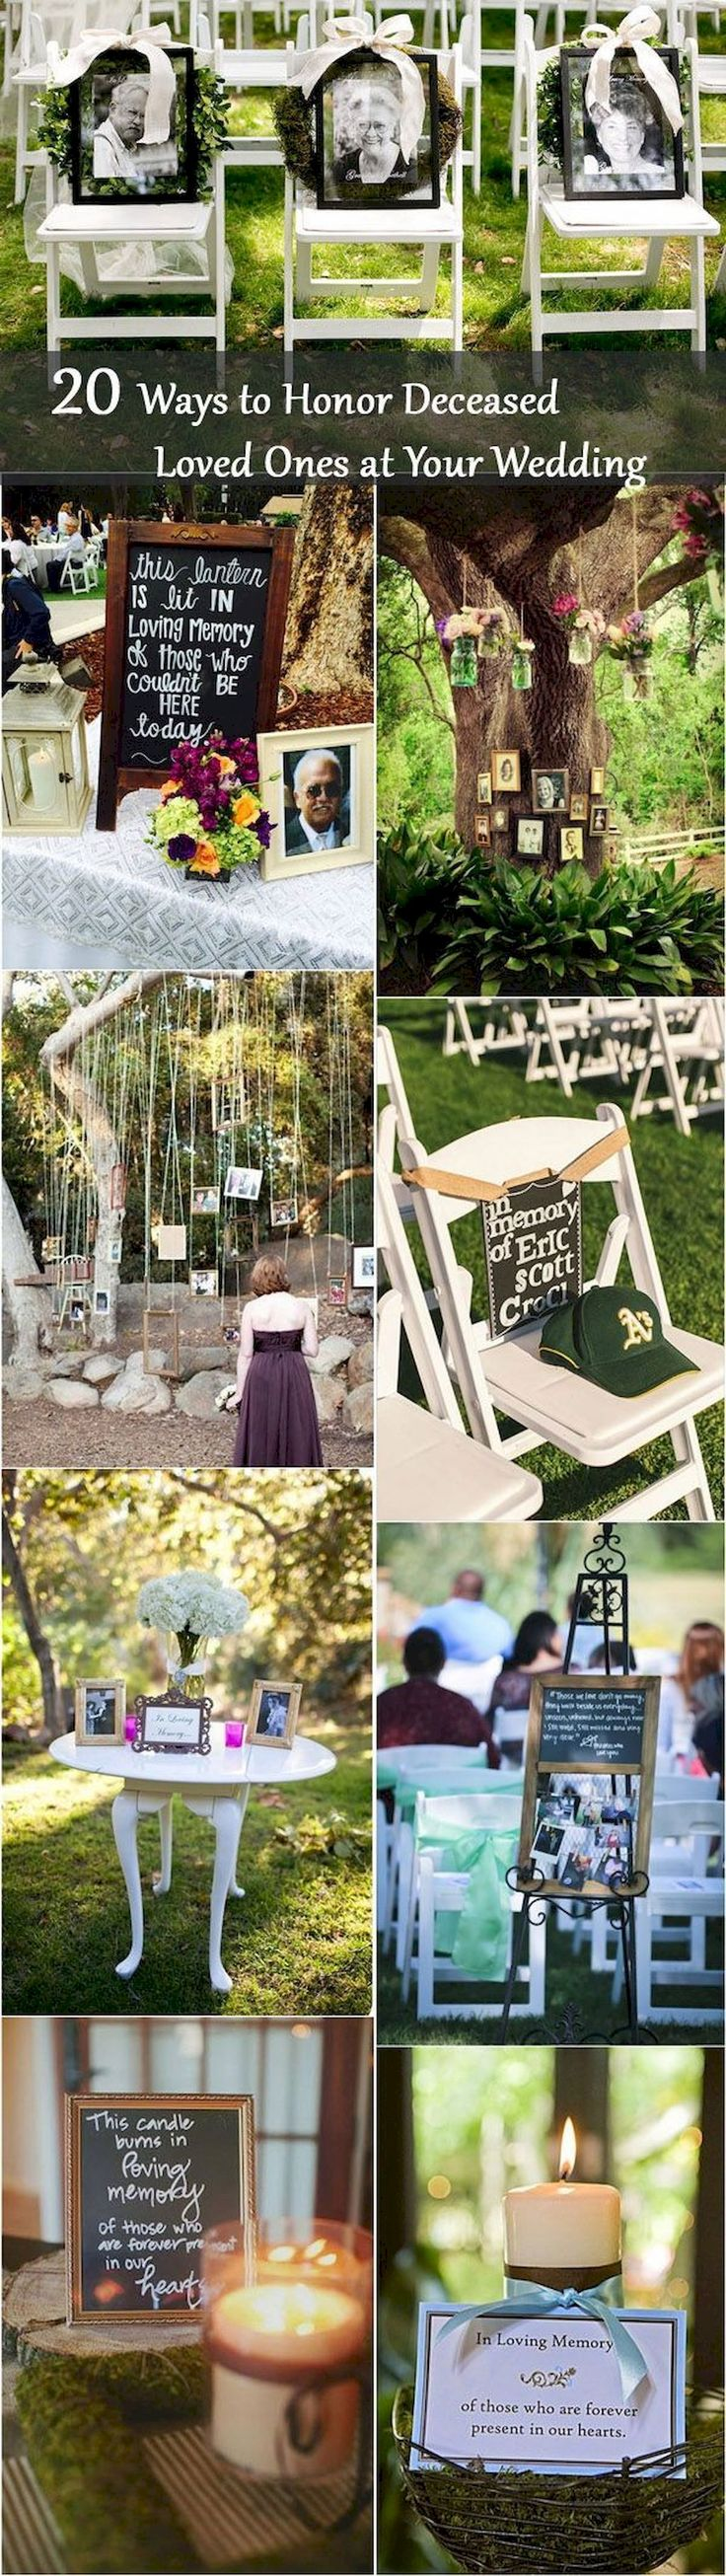 35 best unique wedding ideas reception images on pinterest